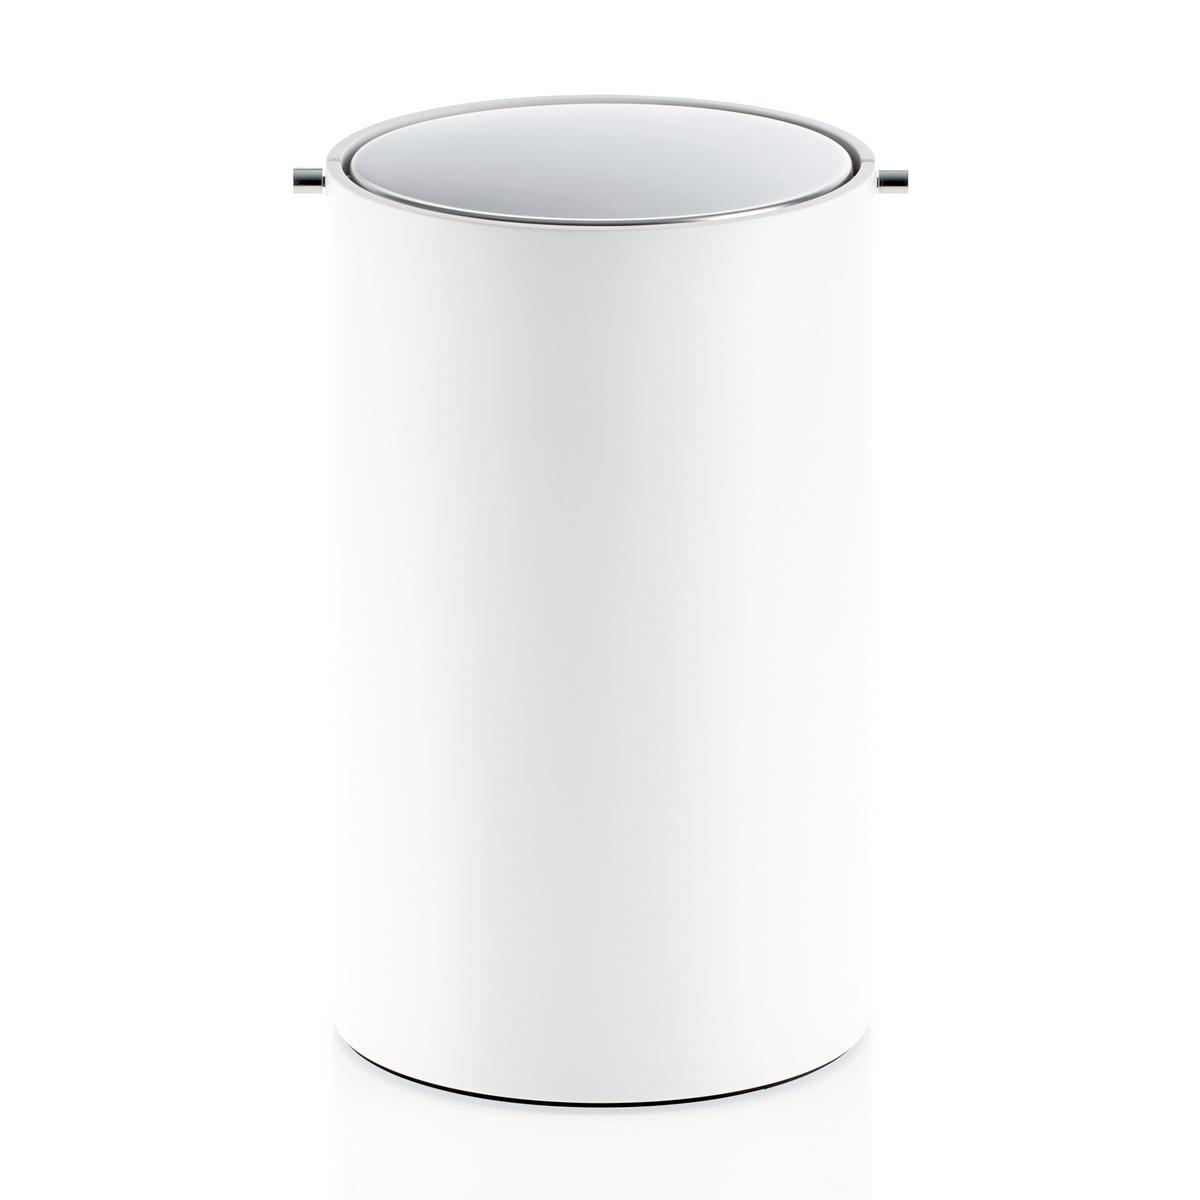 White Bathroom Bin decor walther stone bathroom bin with revolving cover | artedona